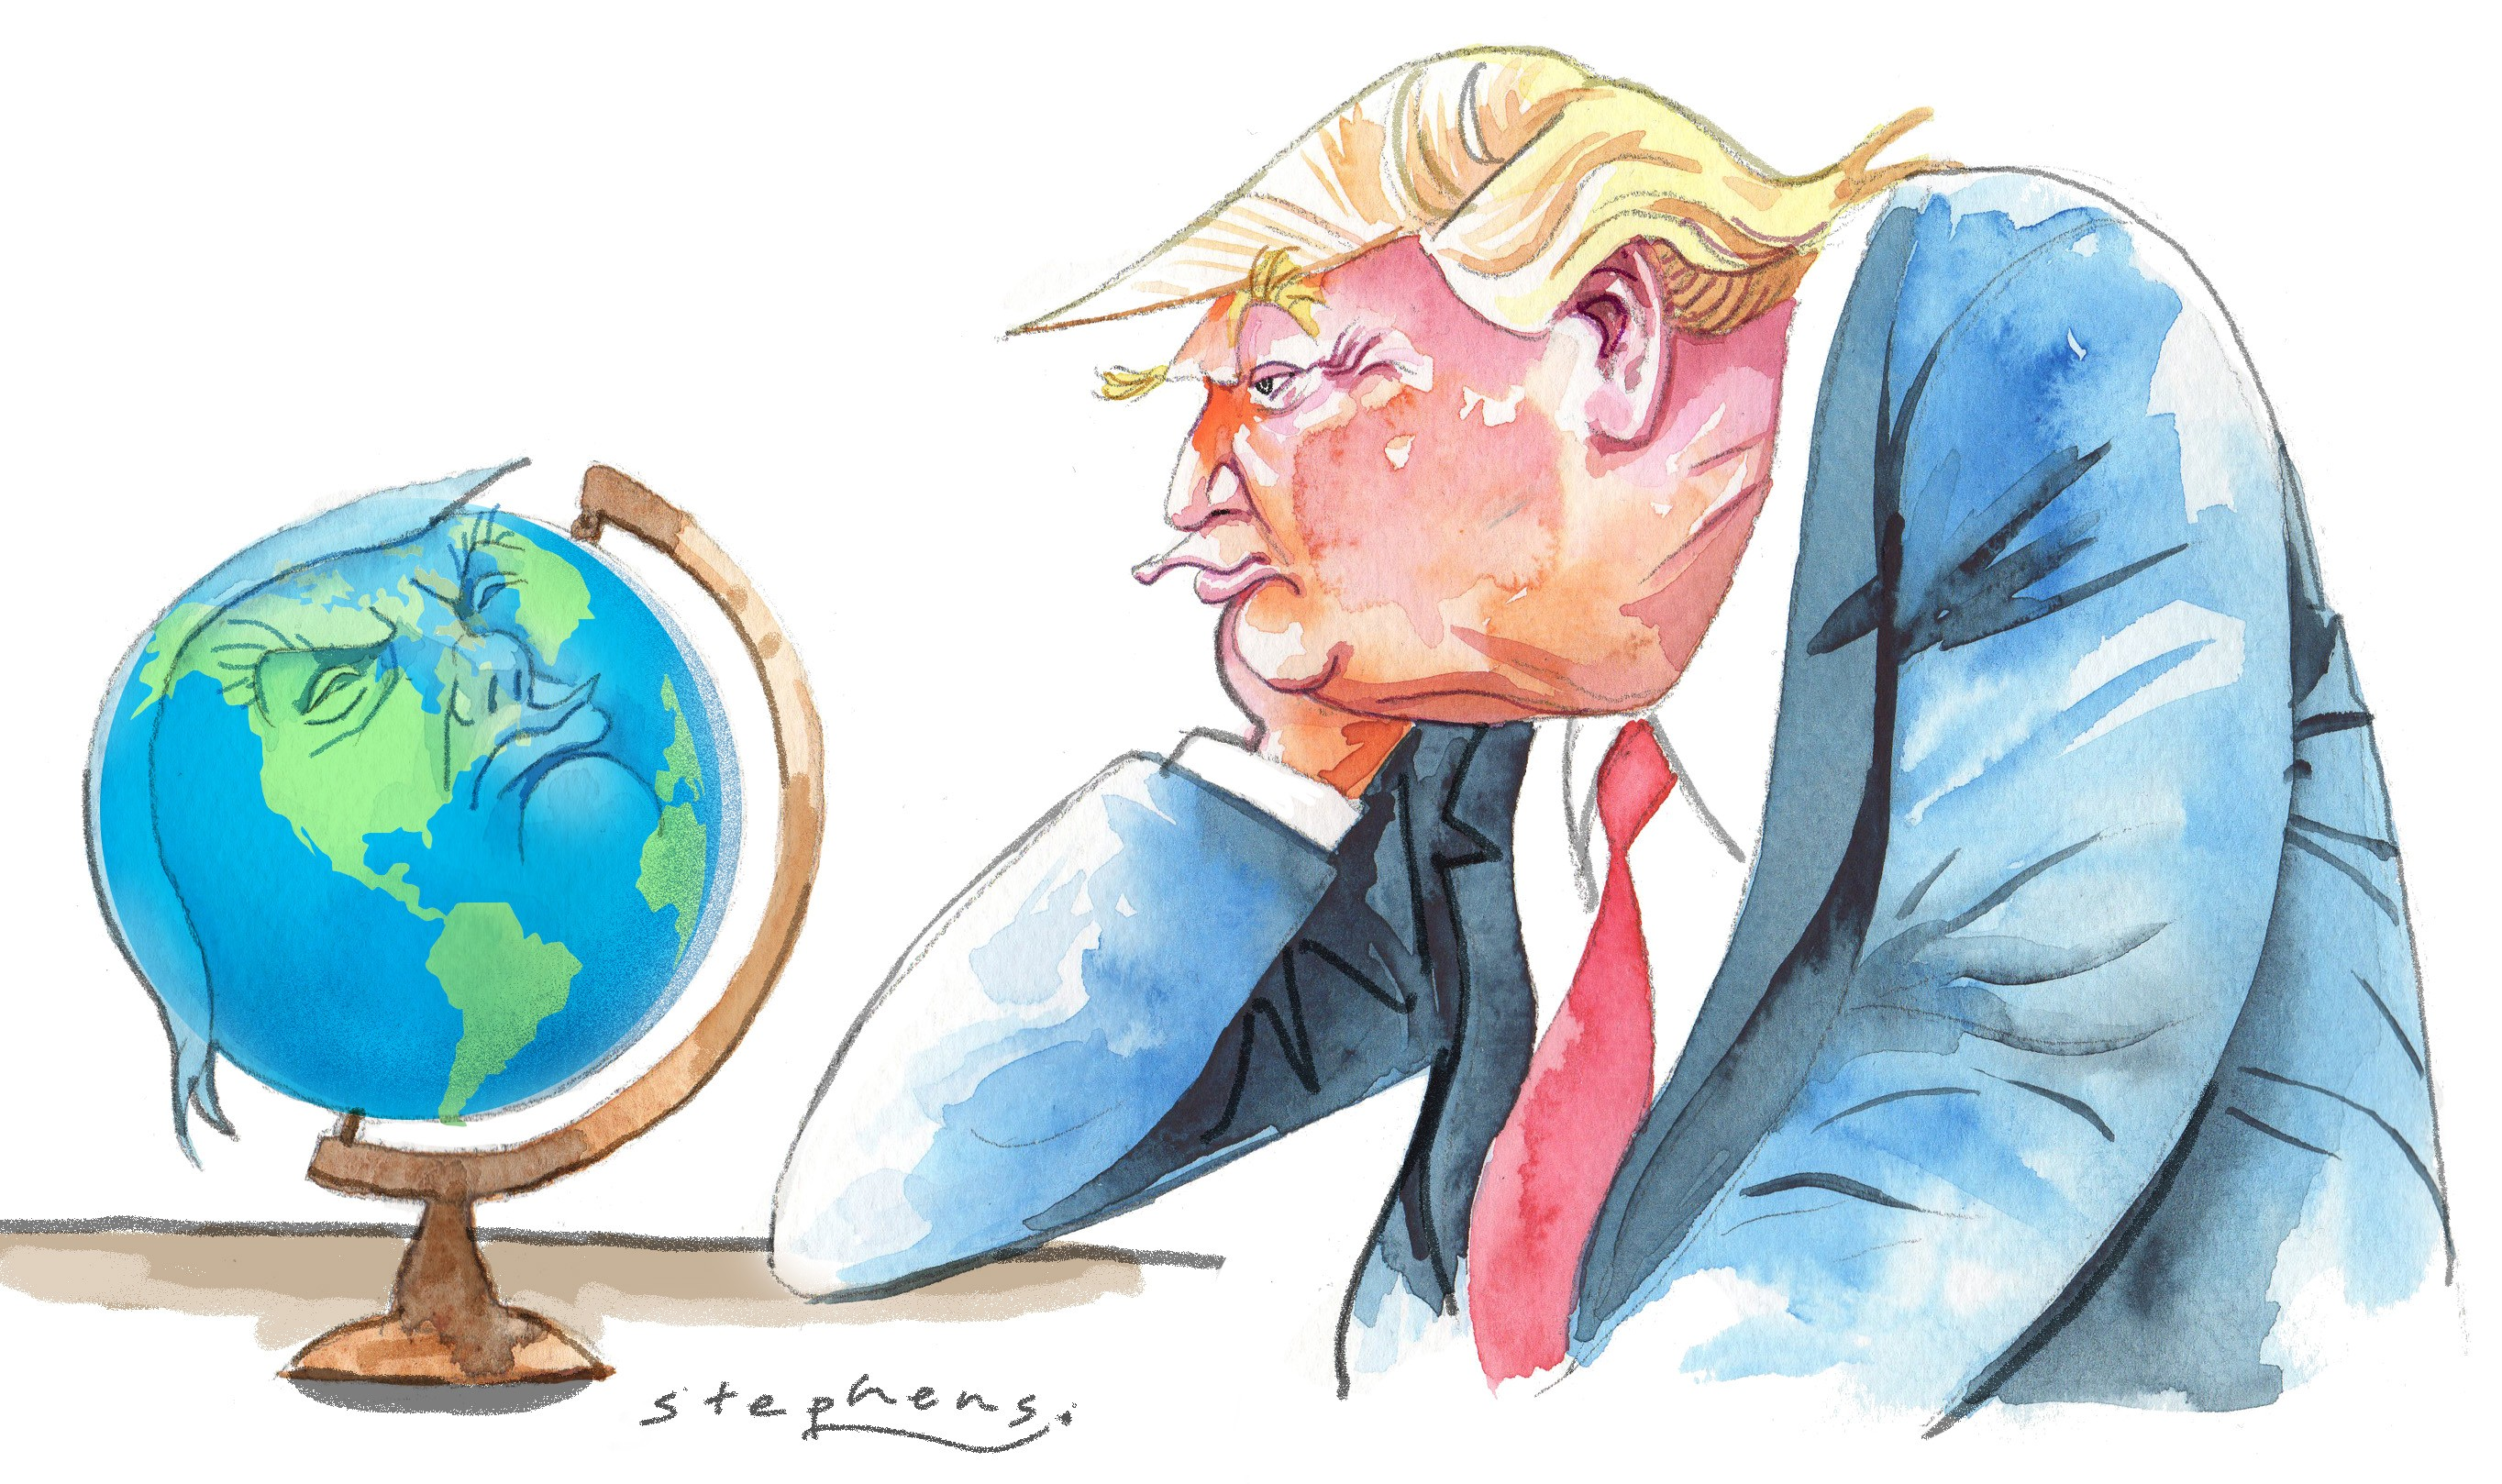 The US stumbles under the burden of global leadership  The